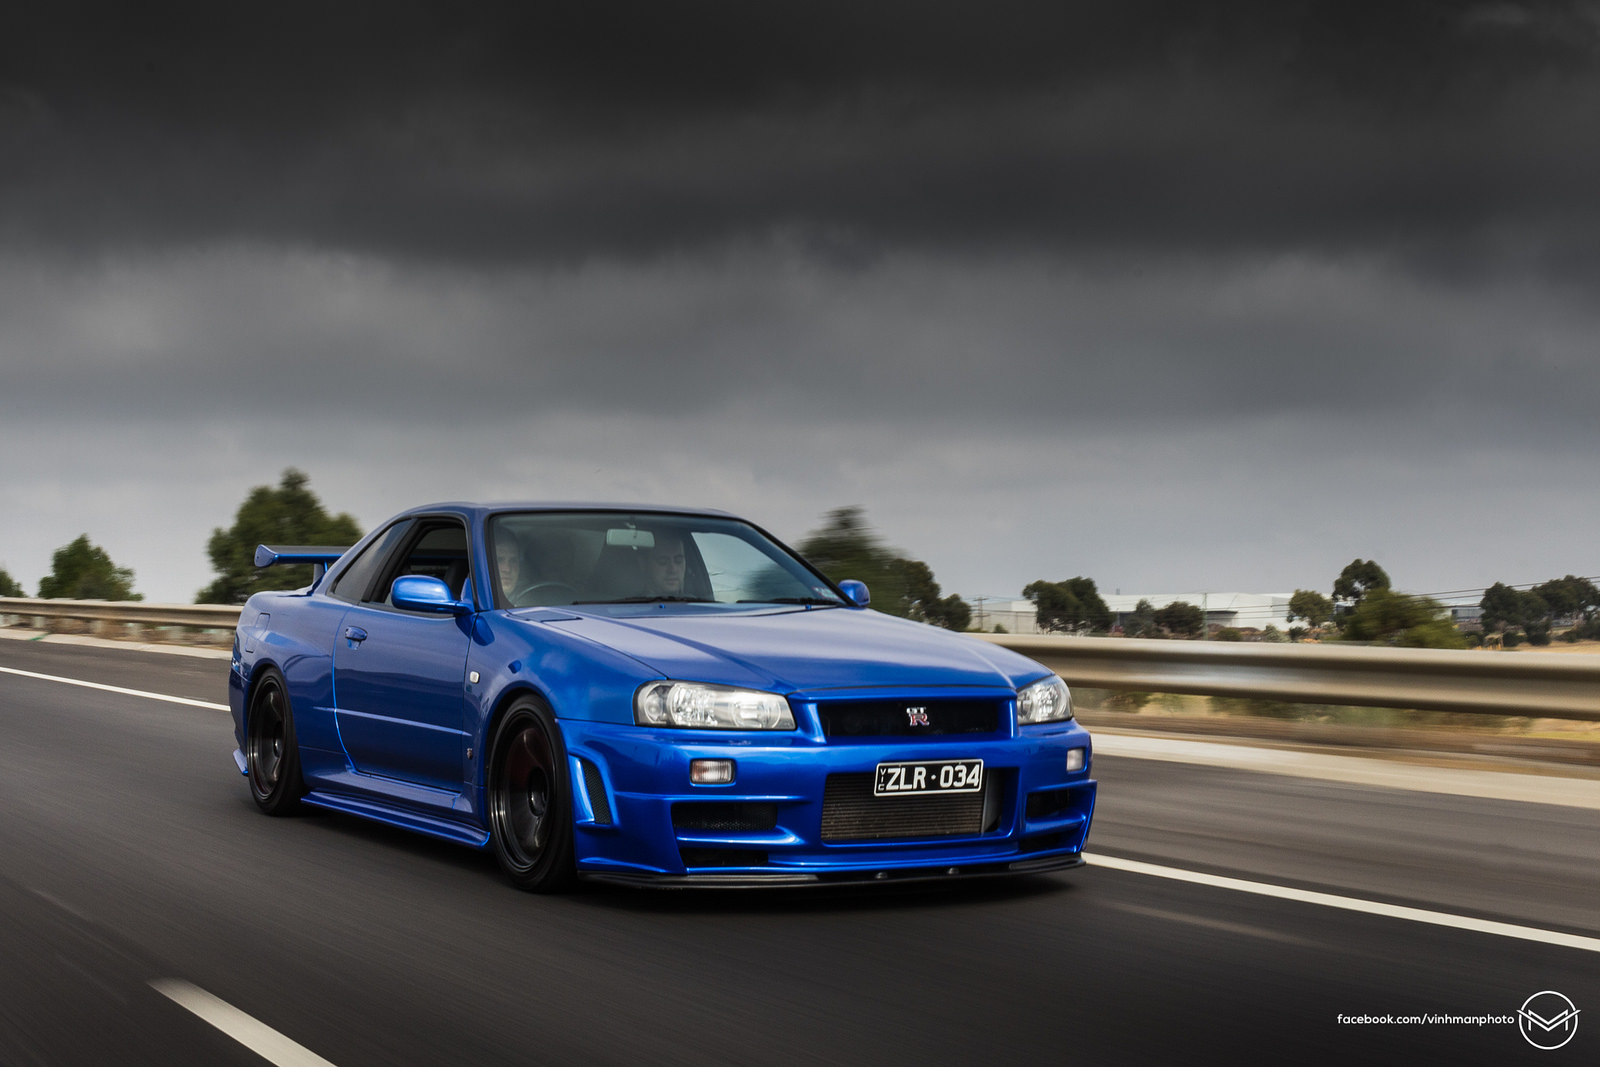 1000 Hp Gtr >> Beautiful R34. | StanceNation™ // Form > Function